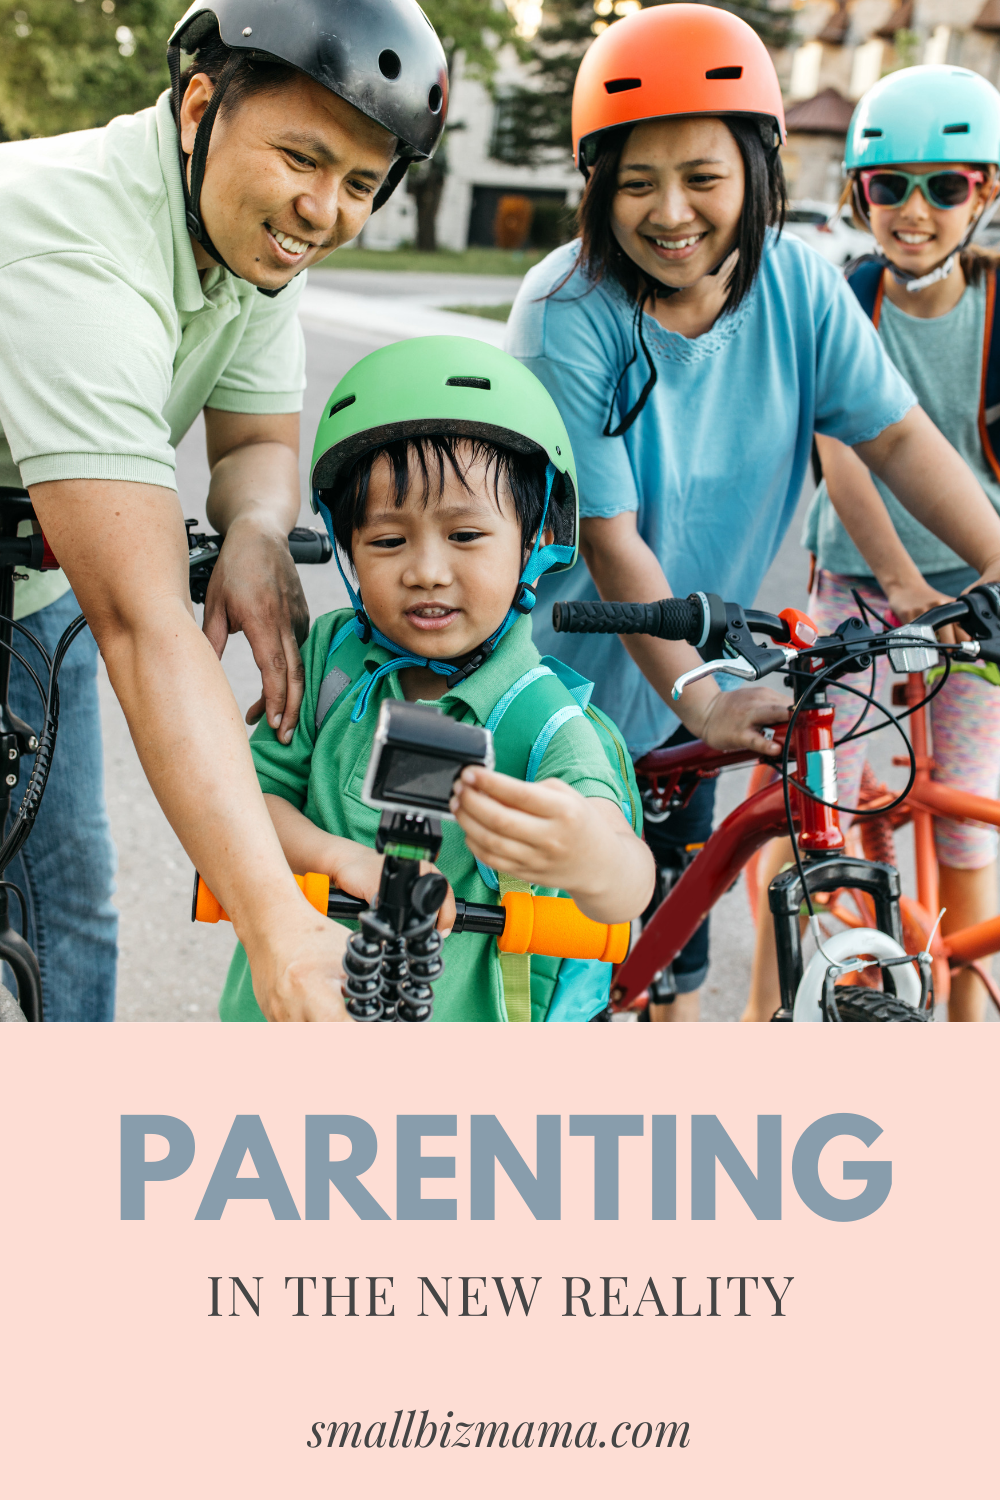 Parenting in the new reality